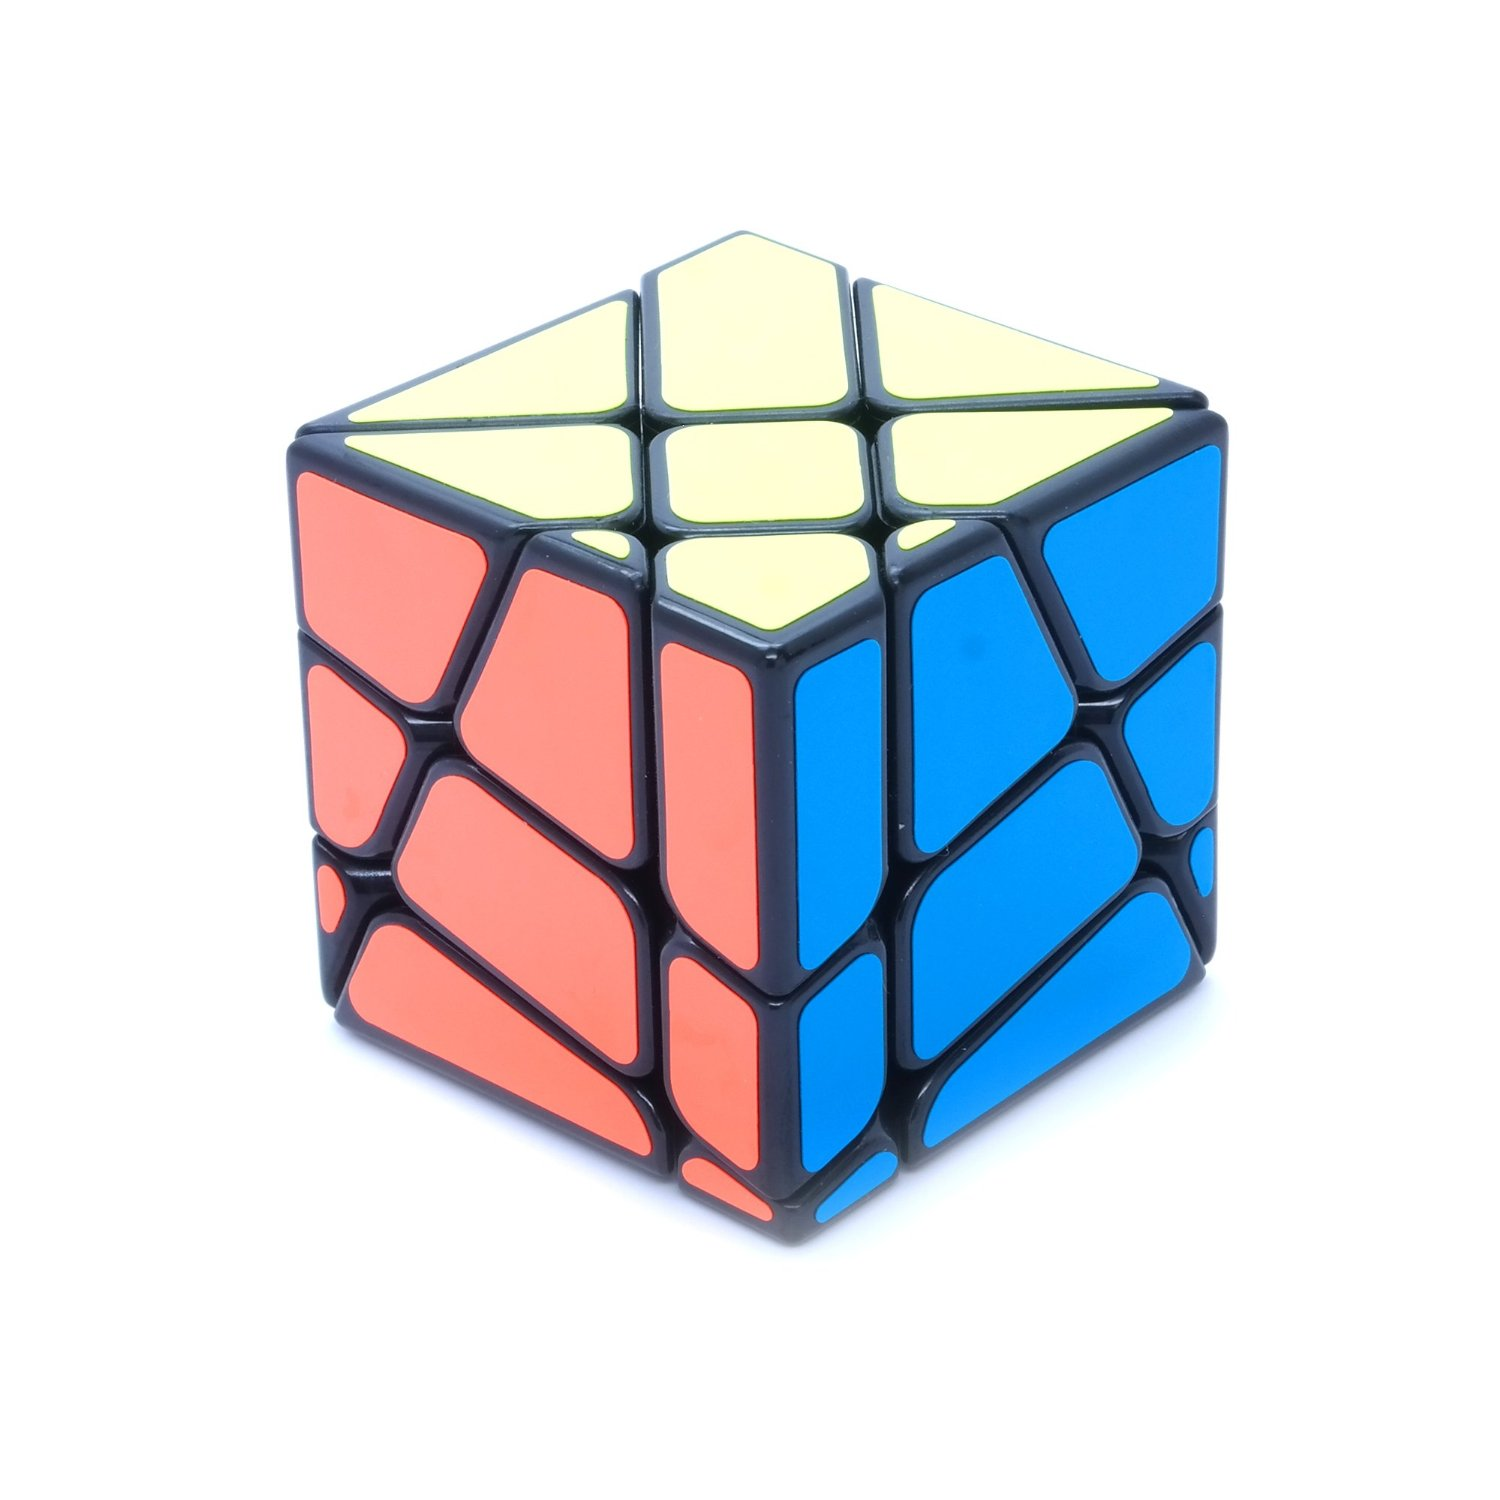 Cheap Cube Crazy, find Cube Crazy deals on line at Alibaba com